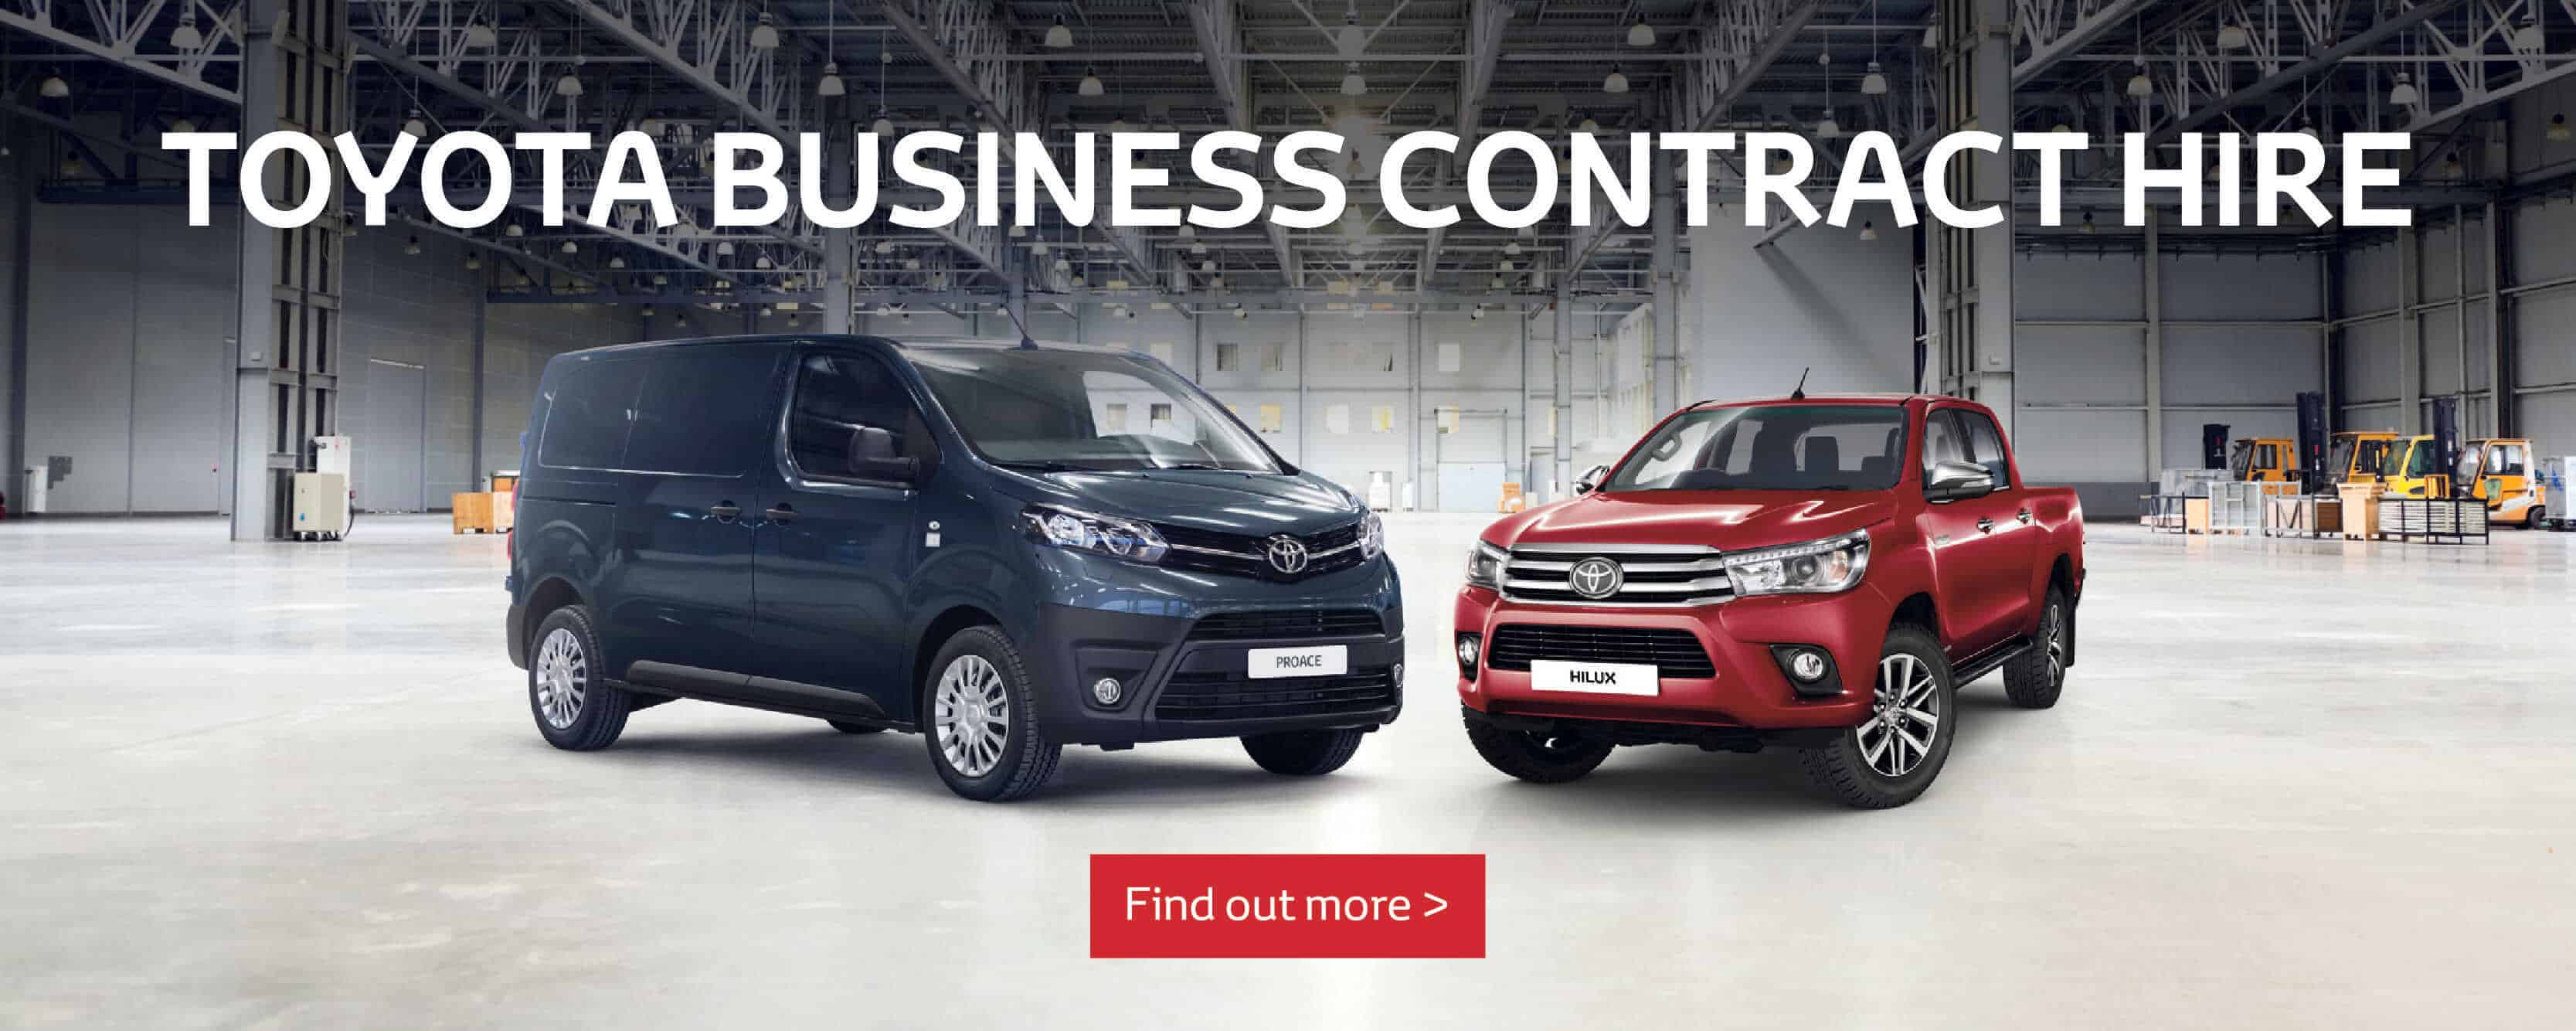 Toyota Business Contract Hire BB